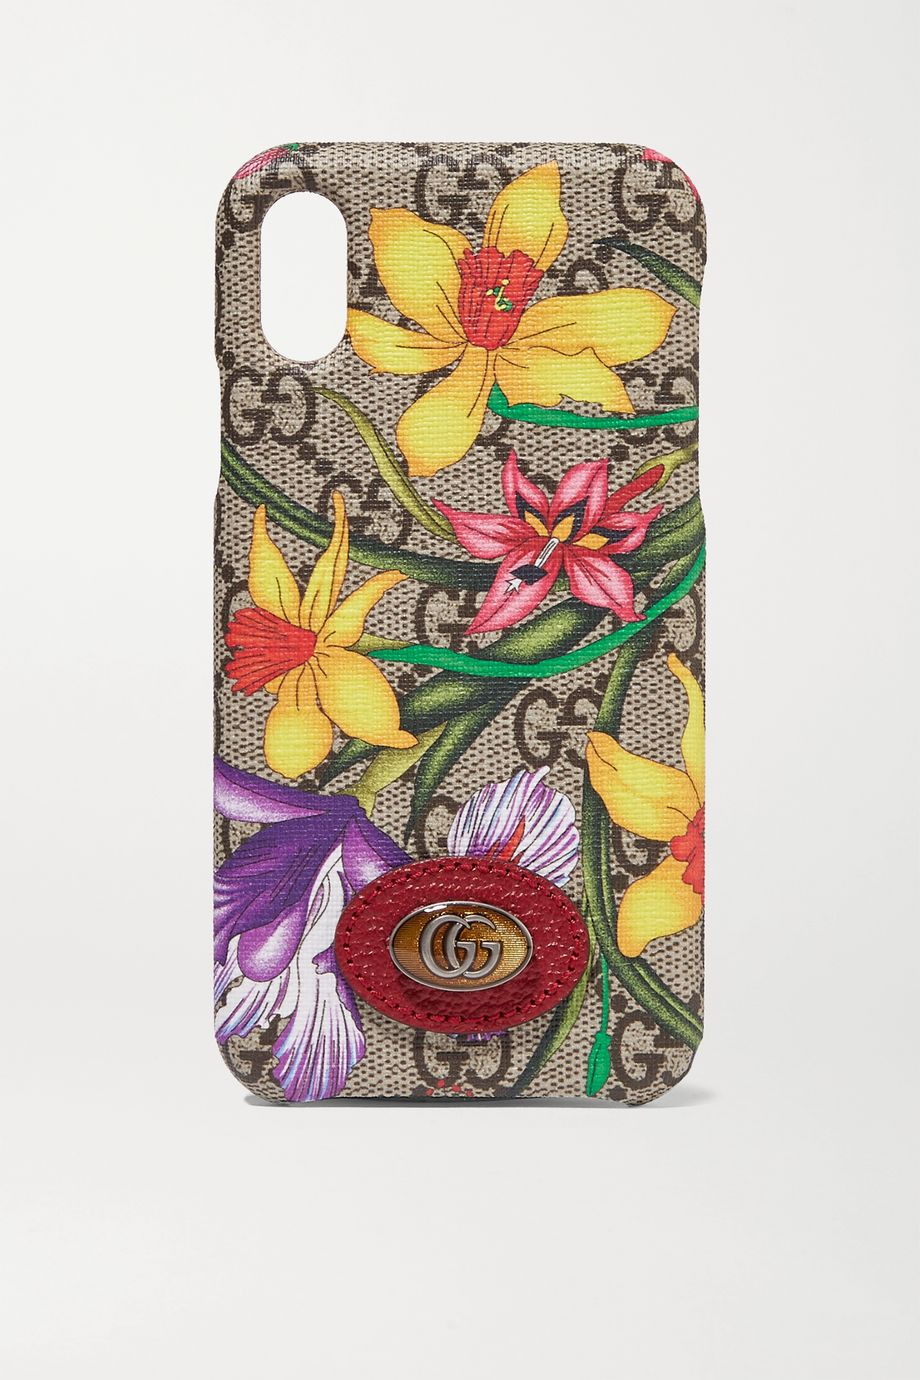 Gucci Ophidia textured leather-trimmed printed coated-canvas iPhone X and XS case